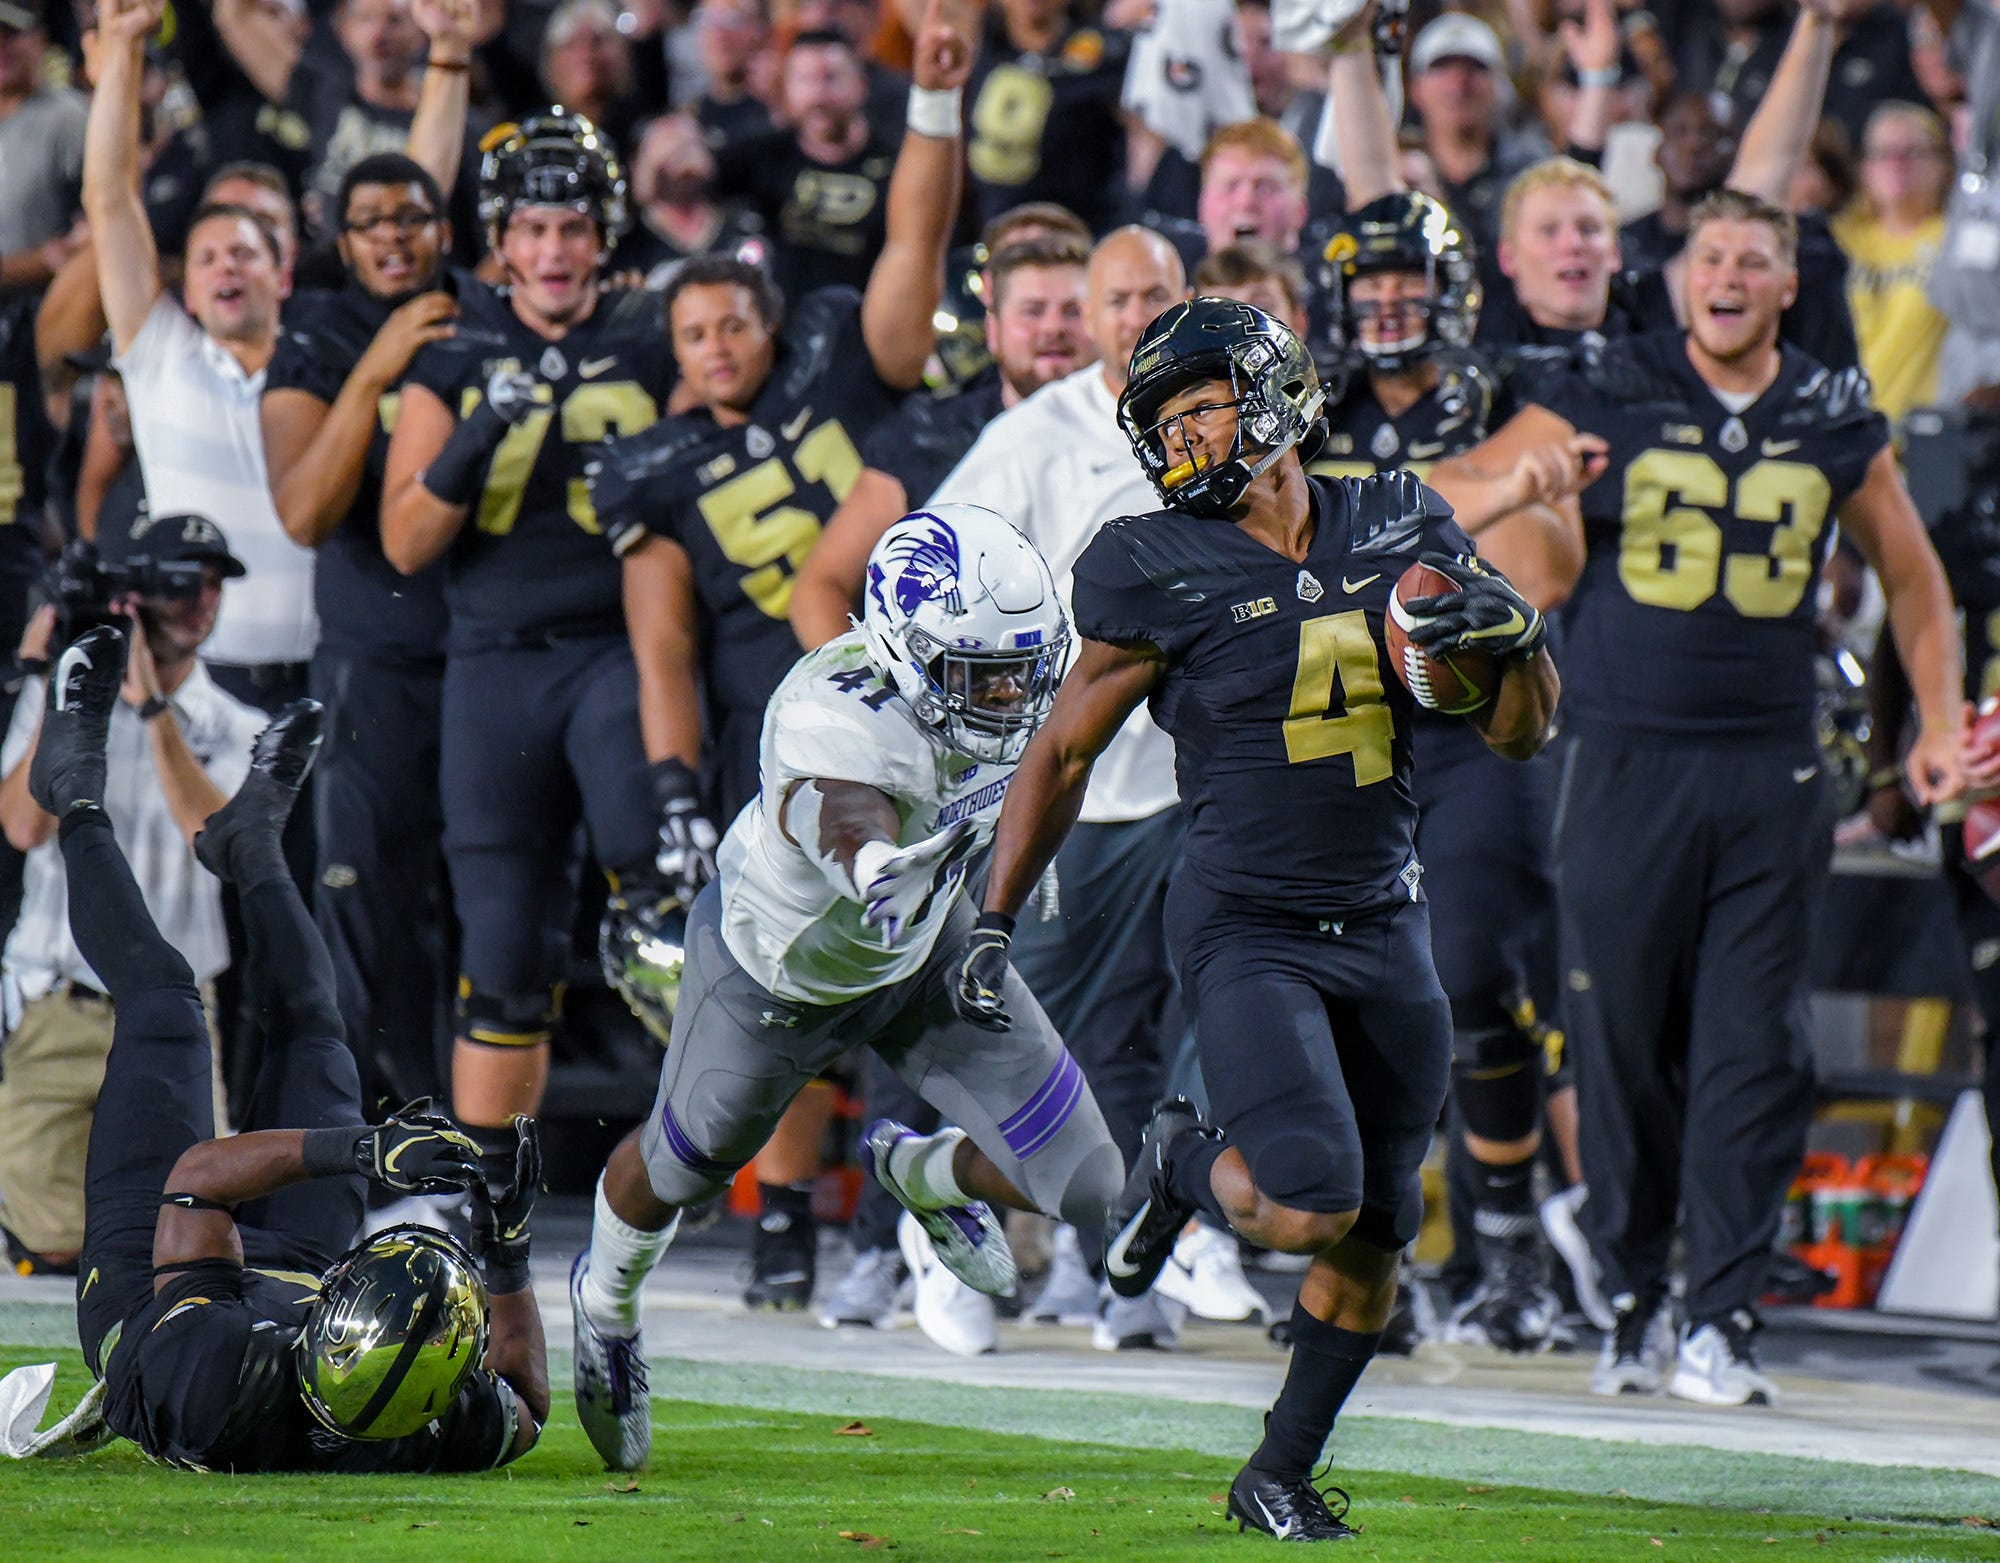 Purdue's Rondale Moore runs 76 yards for a touchdown, part of his record-breaking 313 all-purpose yards Thursday night against Northwestern.